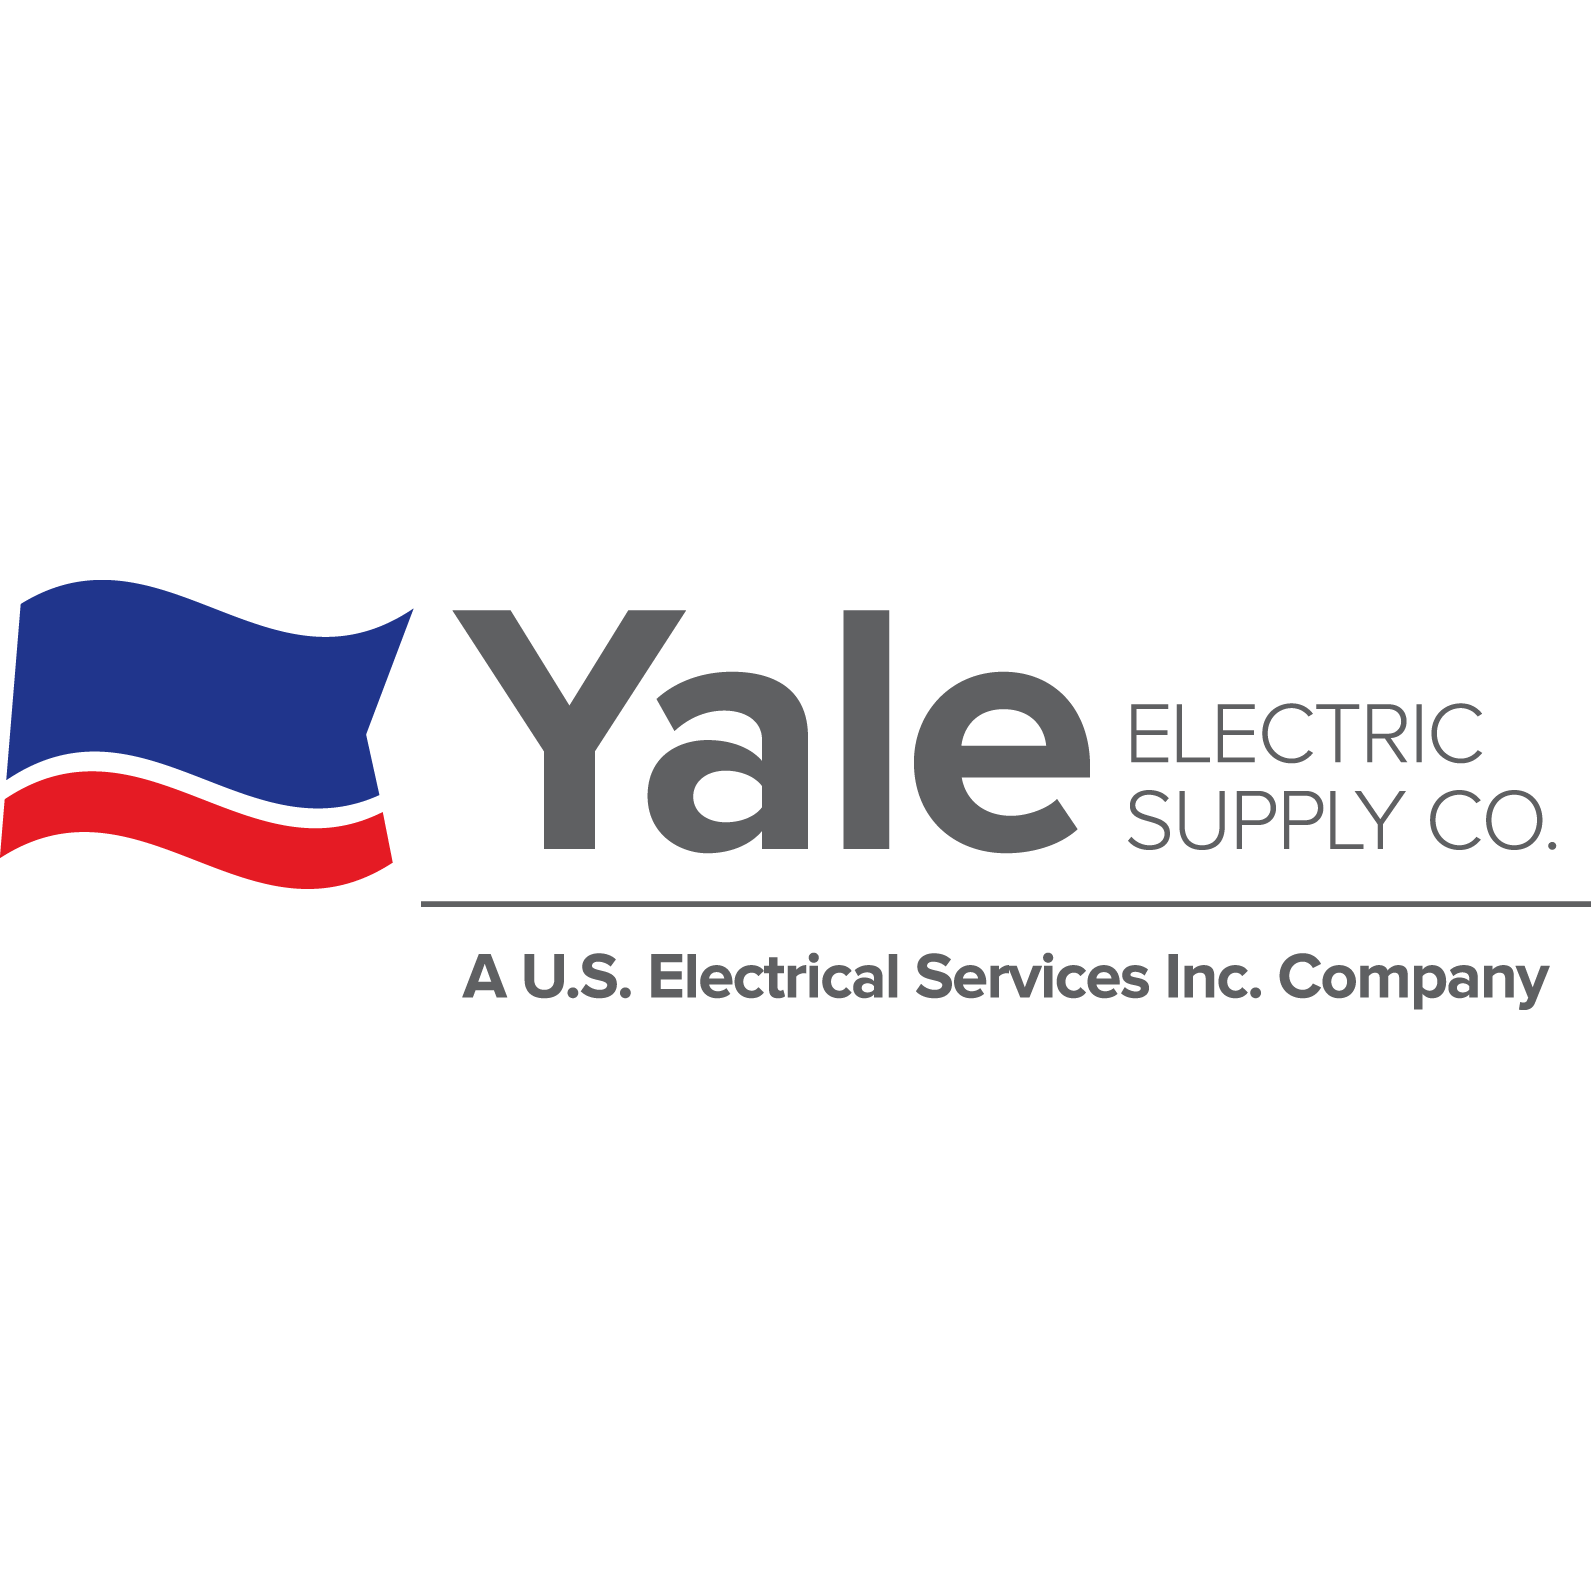 Yale Electric Supply Co. - Lancaster, PA - Electricians